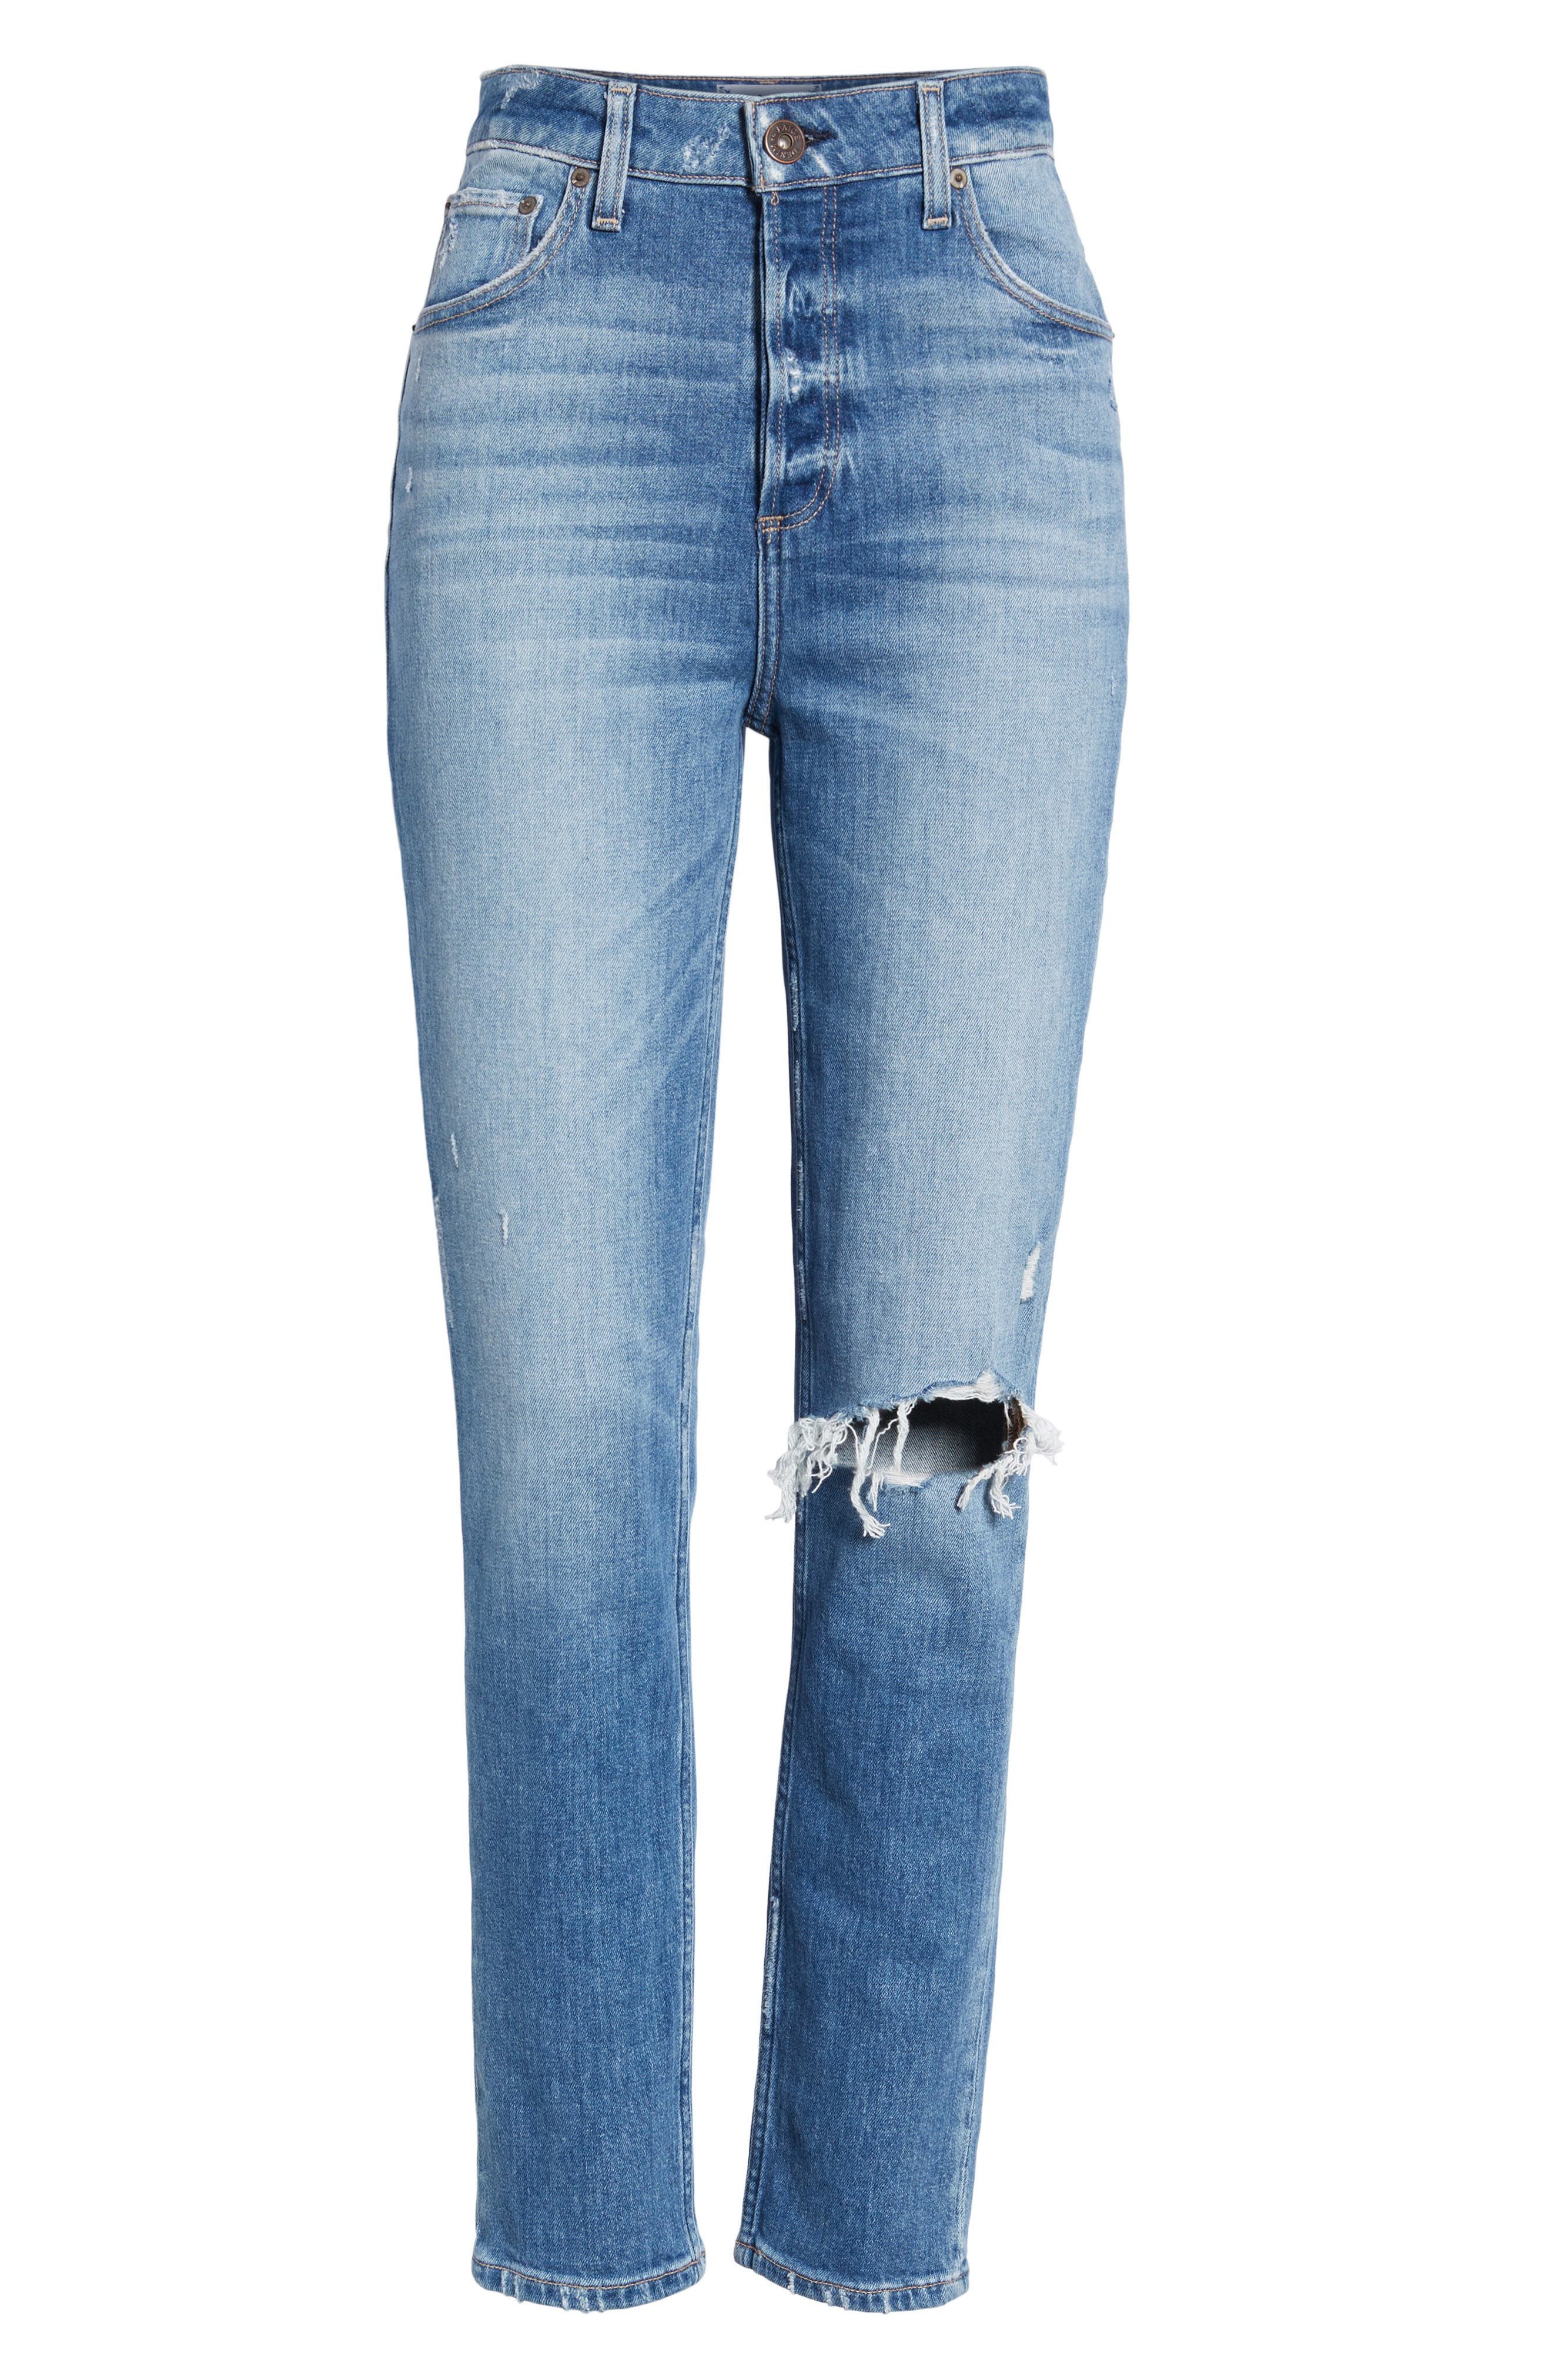 Sarah Ripped High Waist Ankle Straight Leg Jeans,                             Alternate thumbnail 7, color,                             BROOKVIEW DESTRUCTED